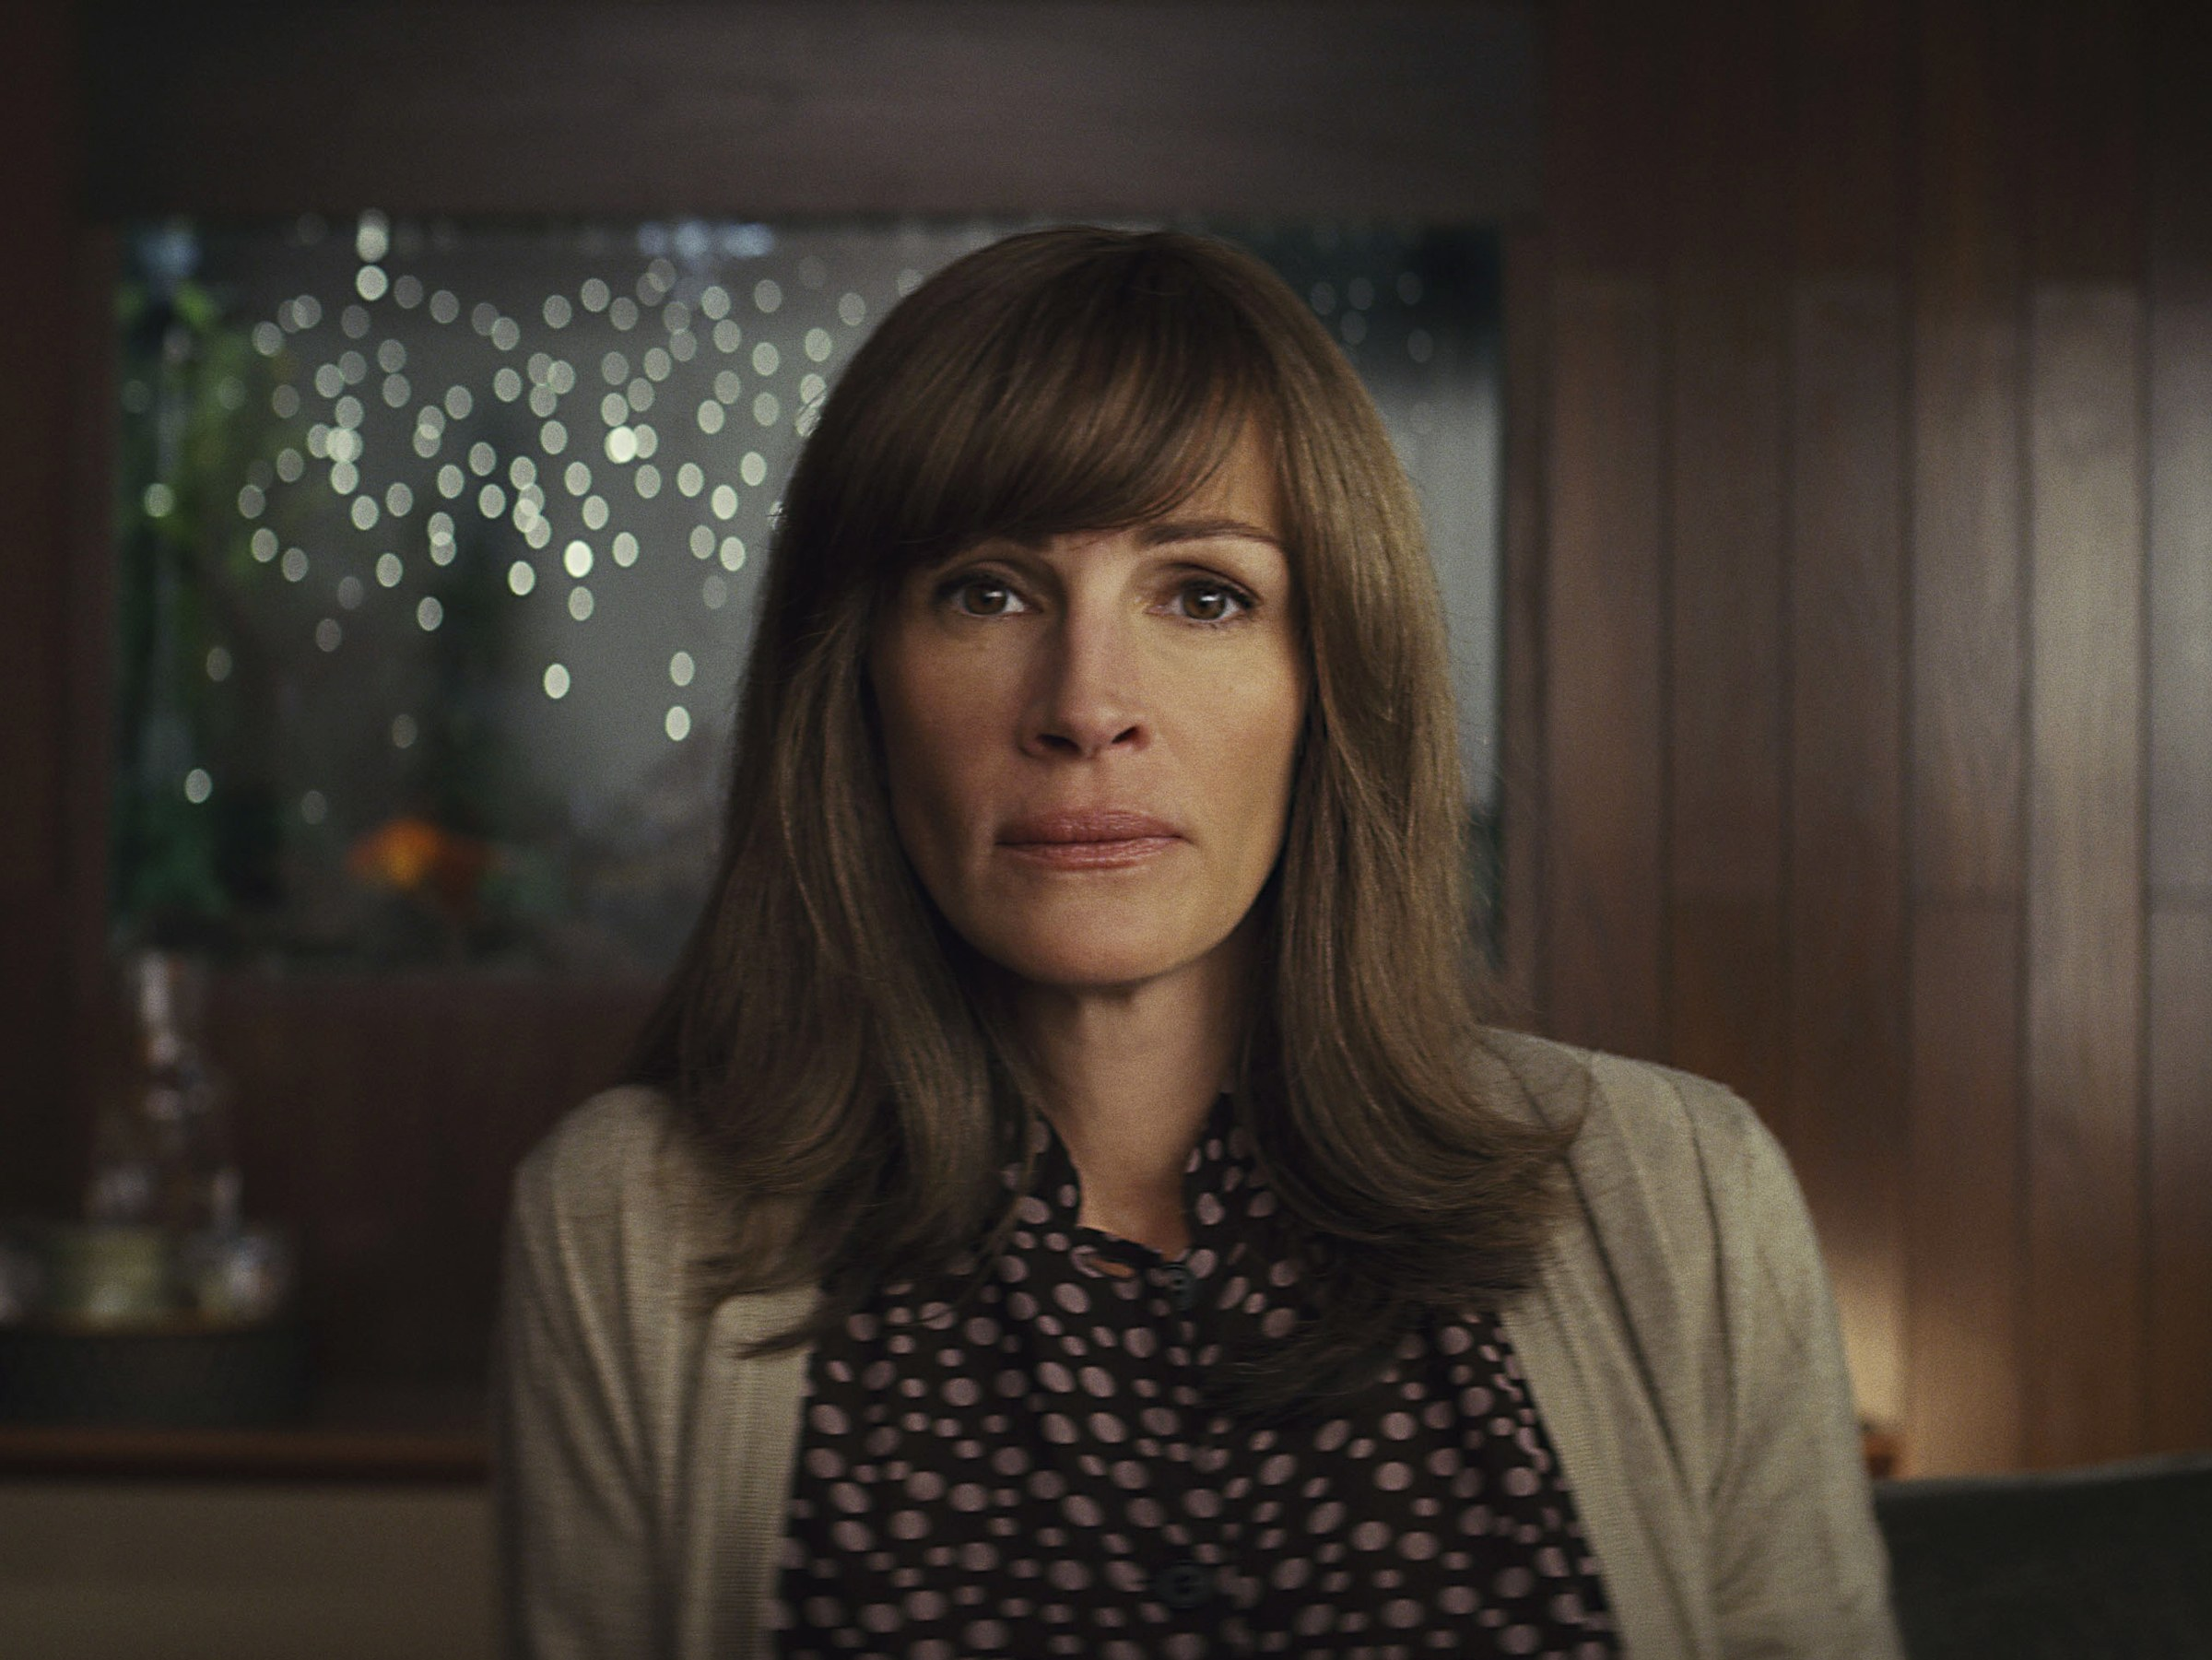 """HOMECOMING"" (Season 1) - VFX SUPERVISOR   Department Head of VFX for the first season of this Amazon show starring Julia Roberts from director Sam Esmail. Duties involved working as the on-set VFX Supervisor, leading the entire department and management of the in-house VFX team and oversight of outside VFX vendors."